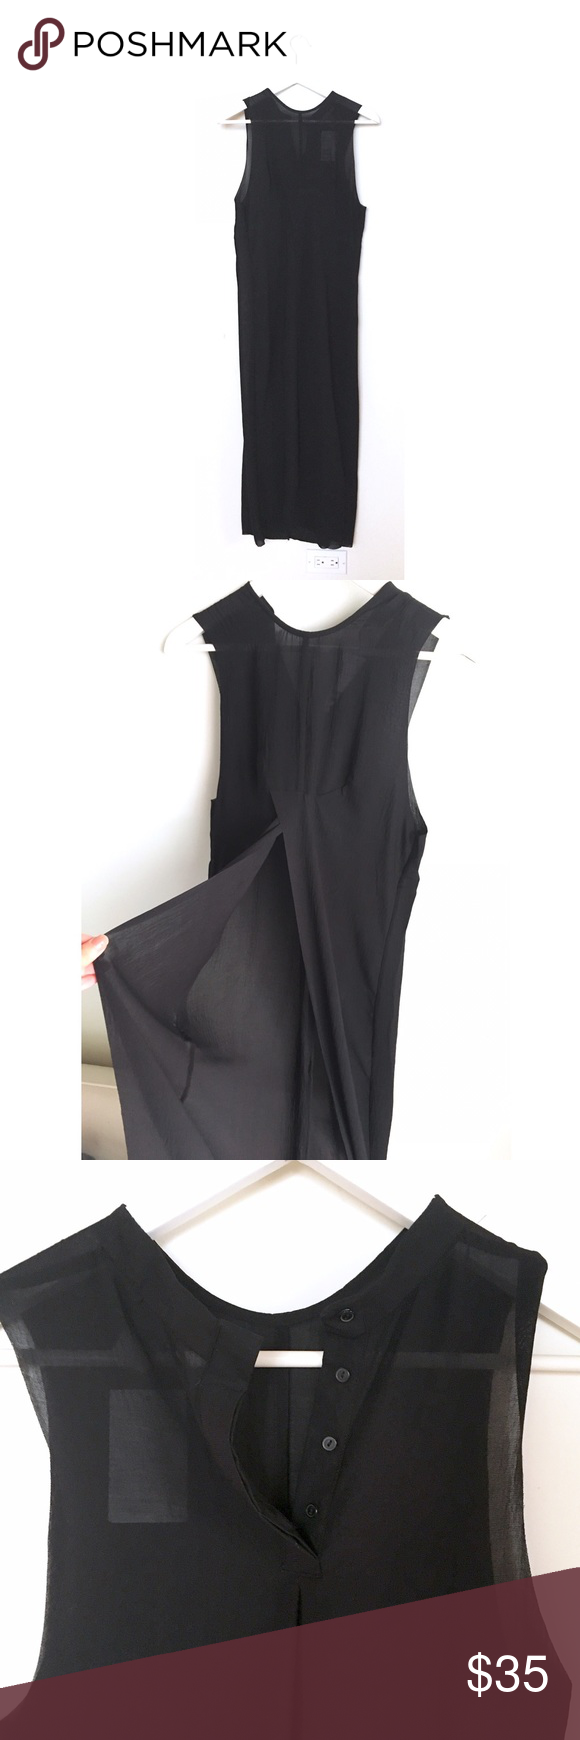 Nwt hum long sheer sleeveless dress nwt h m dress sexy and a button